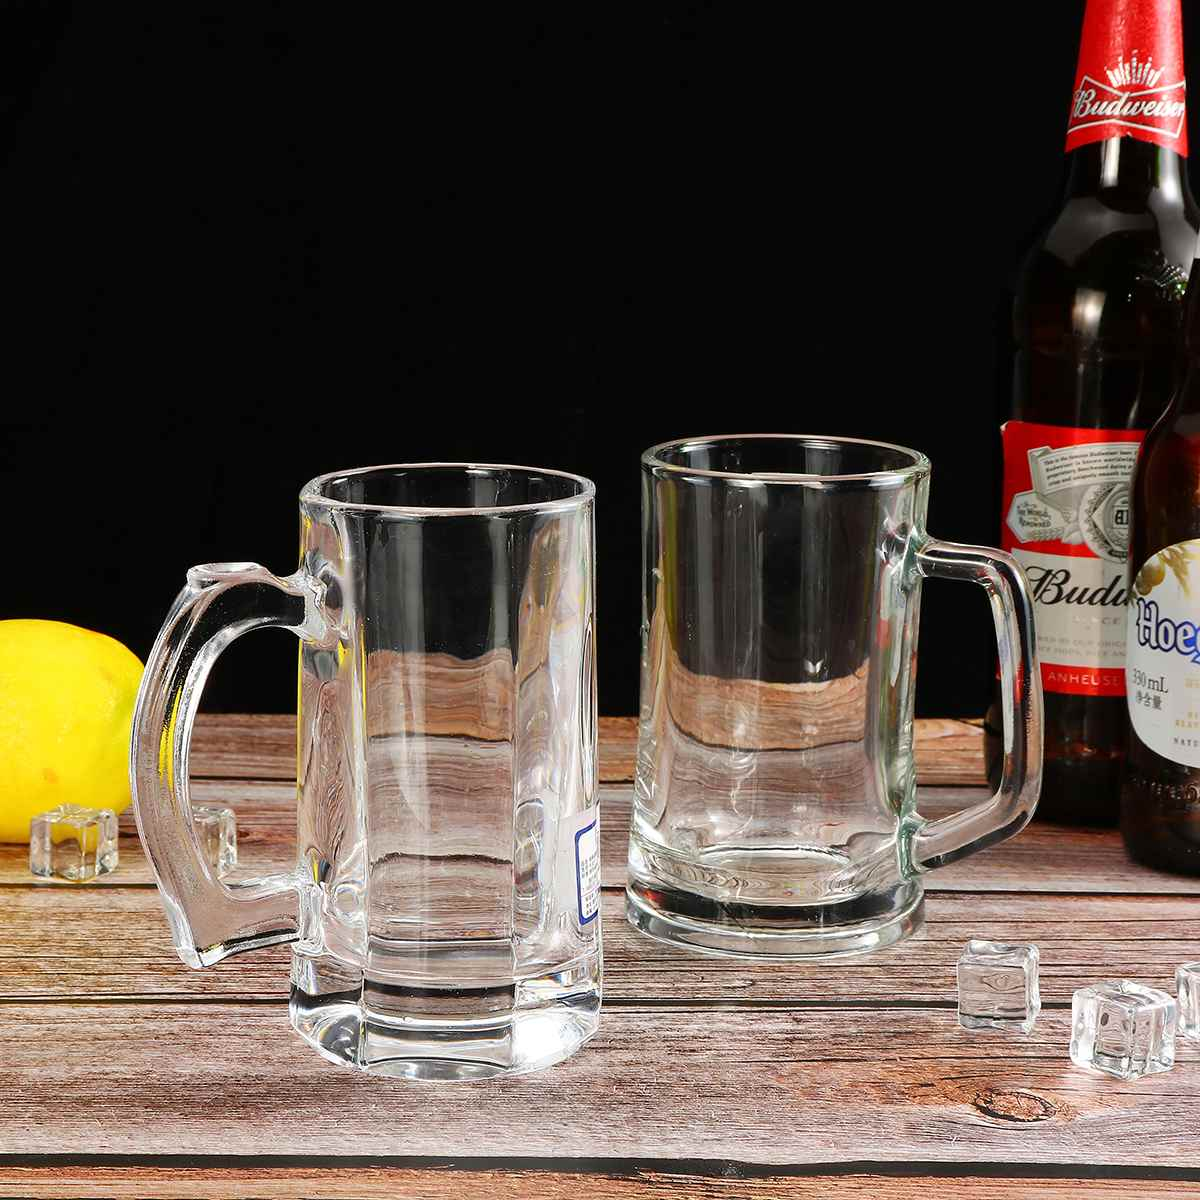 Cocktail Glass Cocktail Mugs Cup Bar Drinking Bar Household Glass Beer Mugs With Handle Thickened Transparent Crystal Tea Cup Drinking Cup Bar Party Mugs